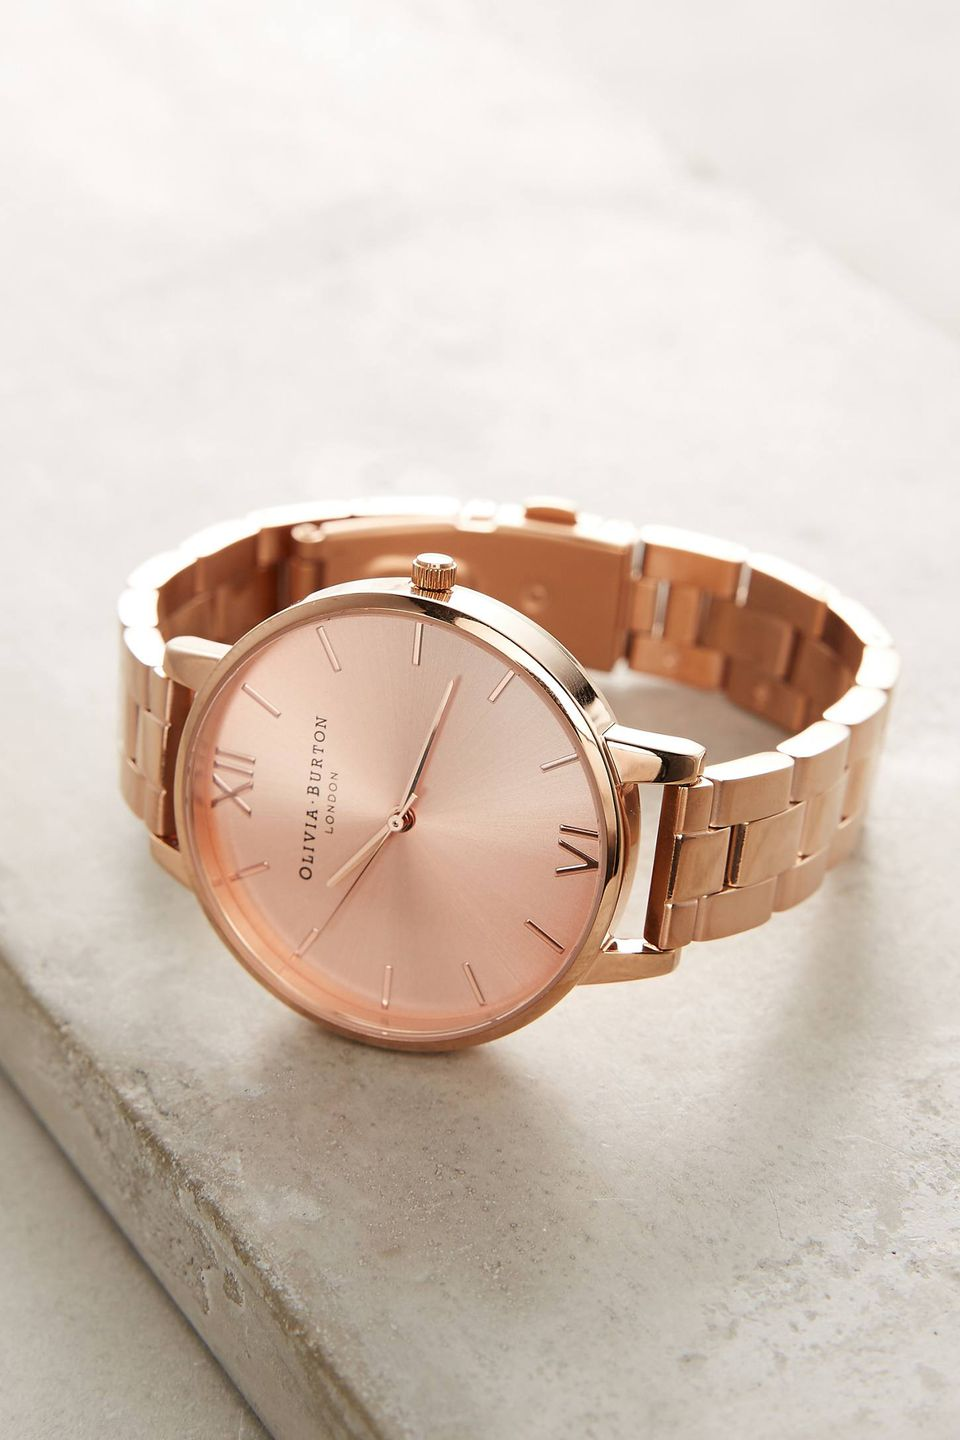 Rose gold jewelry and accessories on trend